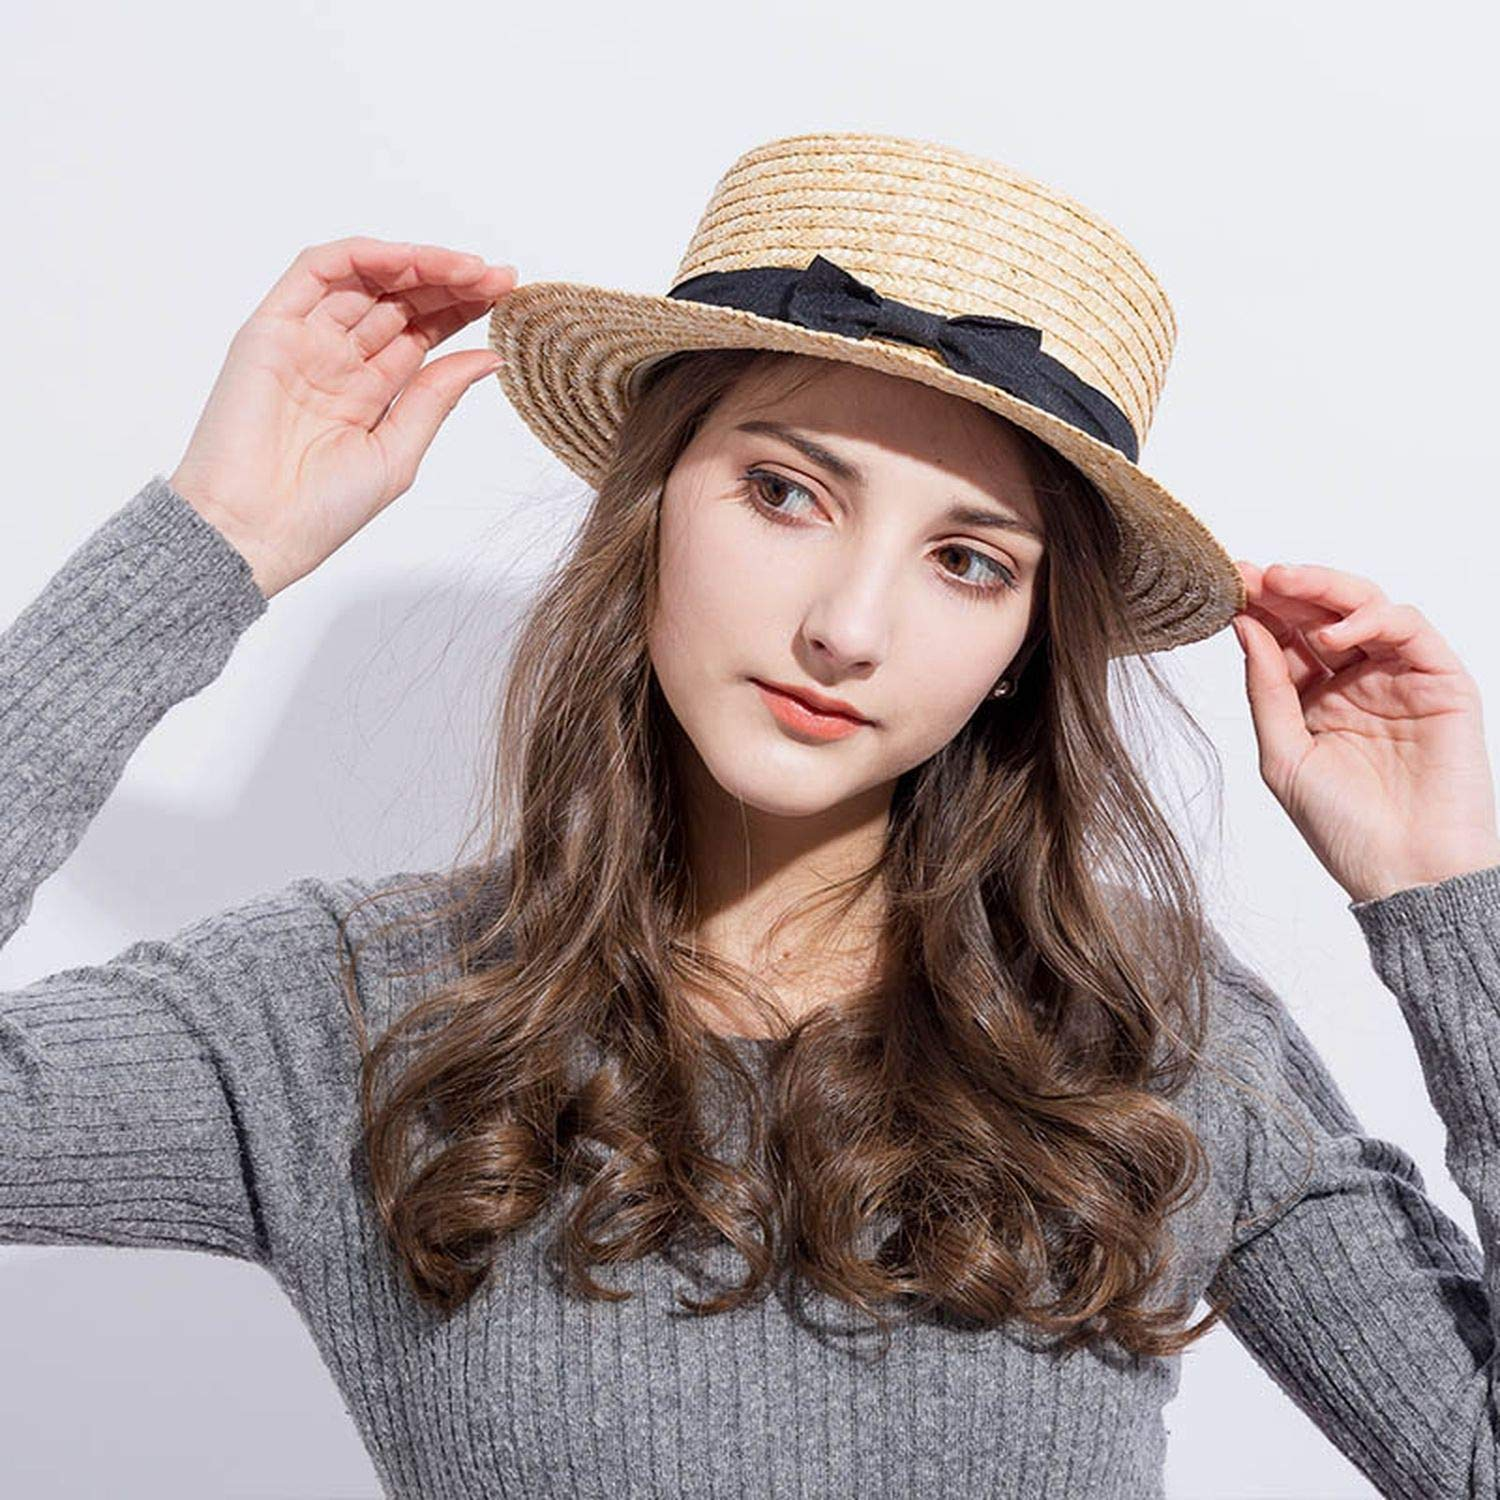 Sun Caps Ribbon Round Flat Top Straw Beach Hat Summer Hats for Women Straw Hat